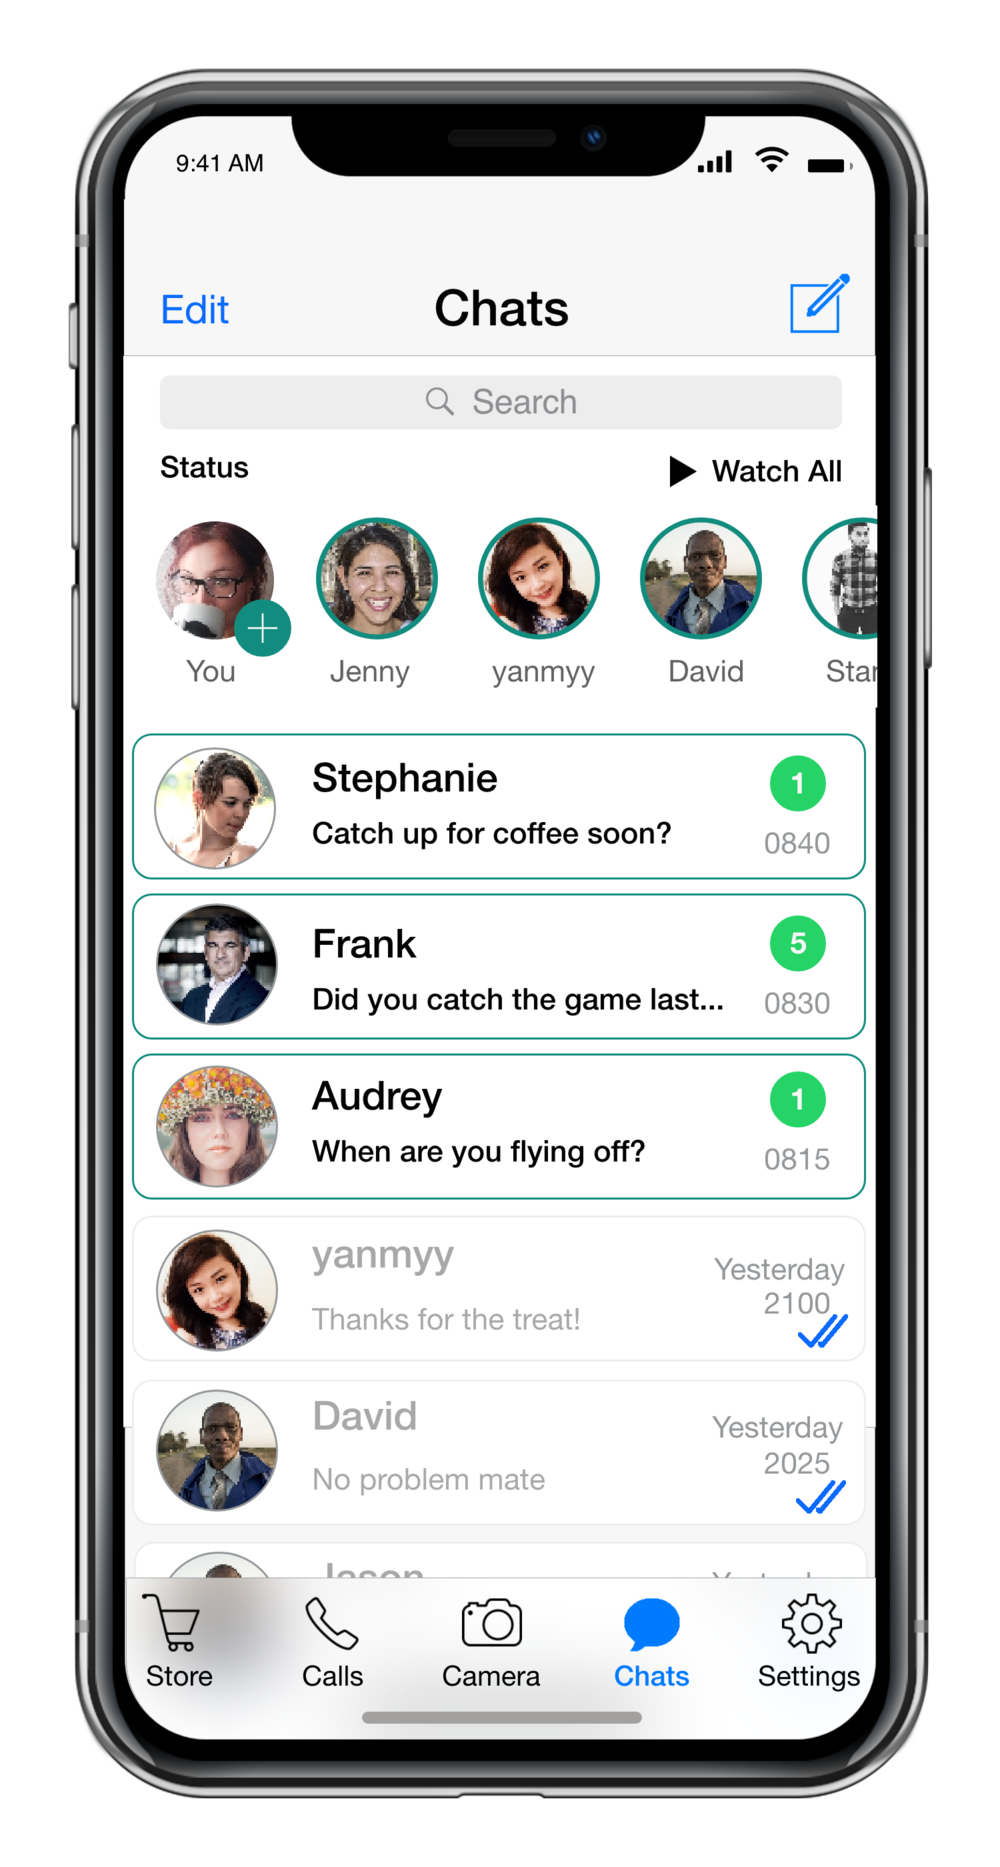 chatlist_iphone10.png